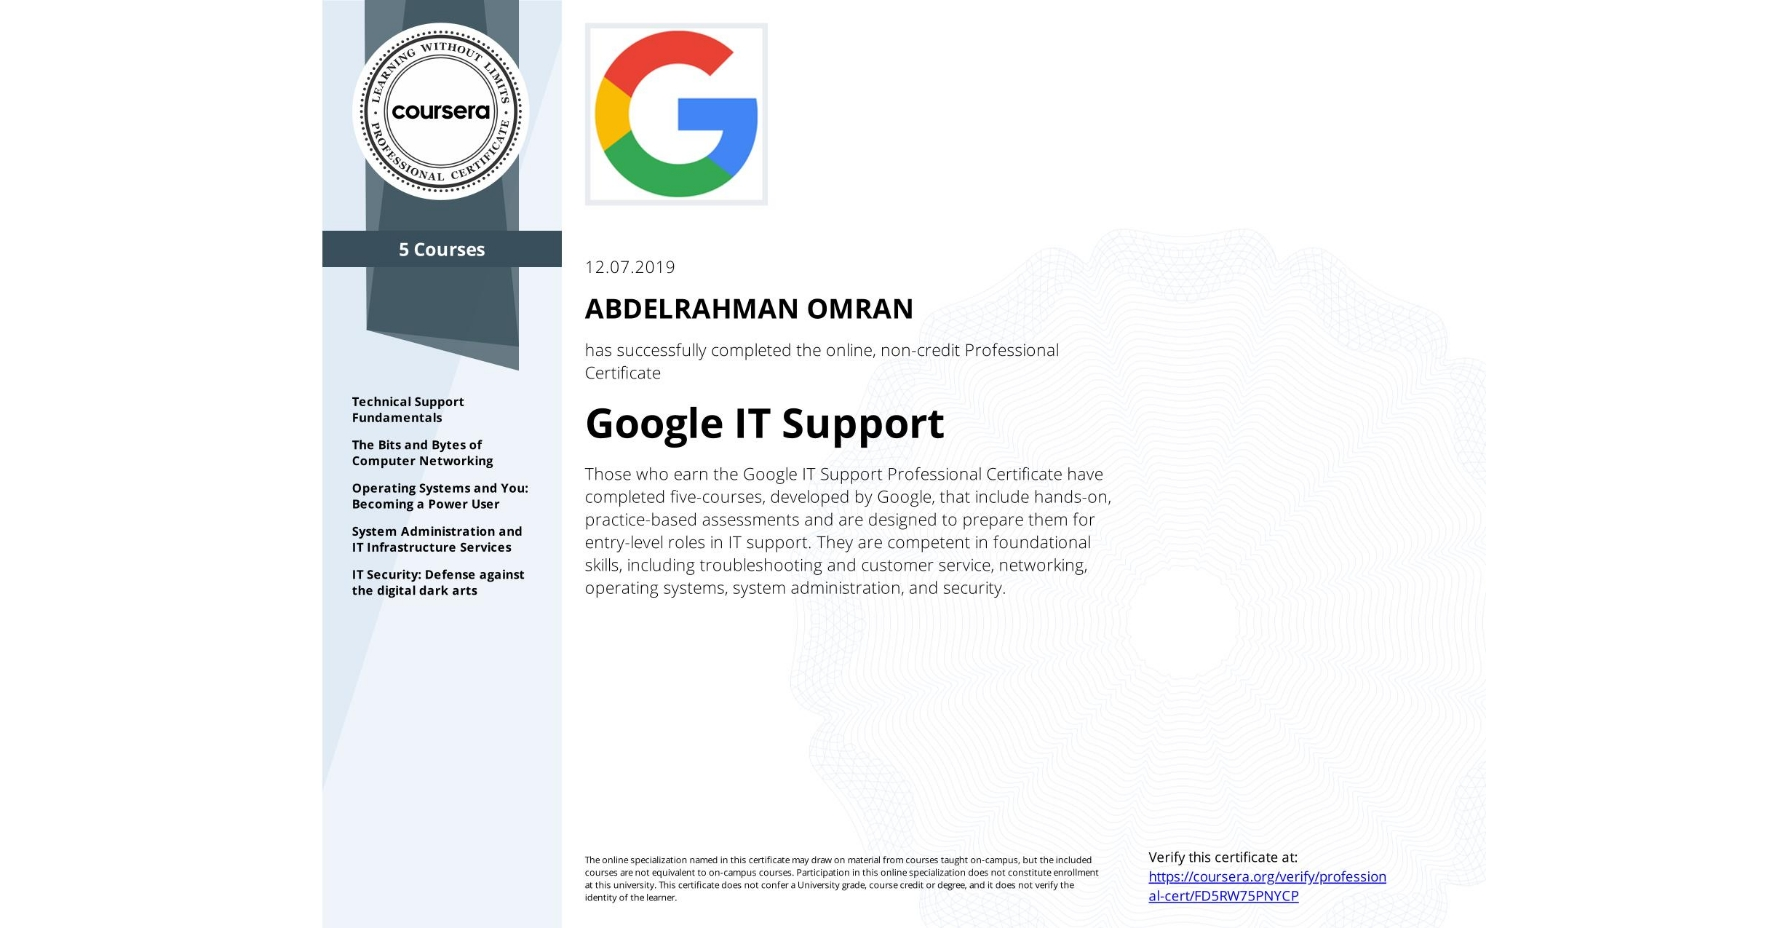 View certificate for ABDELRAHMAN OMRAN, Google IT Support, offered through Coursera. Those who earn the Google IT Support Professional Certificate have completed five-courses, developed by Google, that include hands-on, practice-based assessments and are designed to prepare them for entry-level roles in IT support. They are competent in foundational skills, including troubleshooting and customer service, networking, operating systems, system administration, and security.